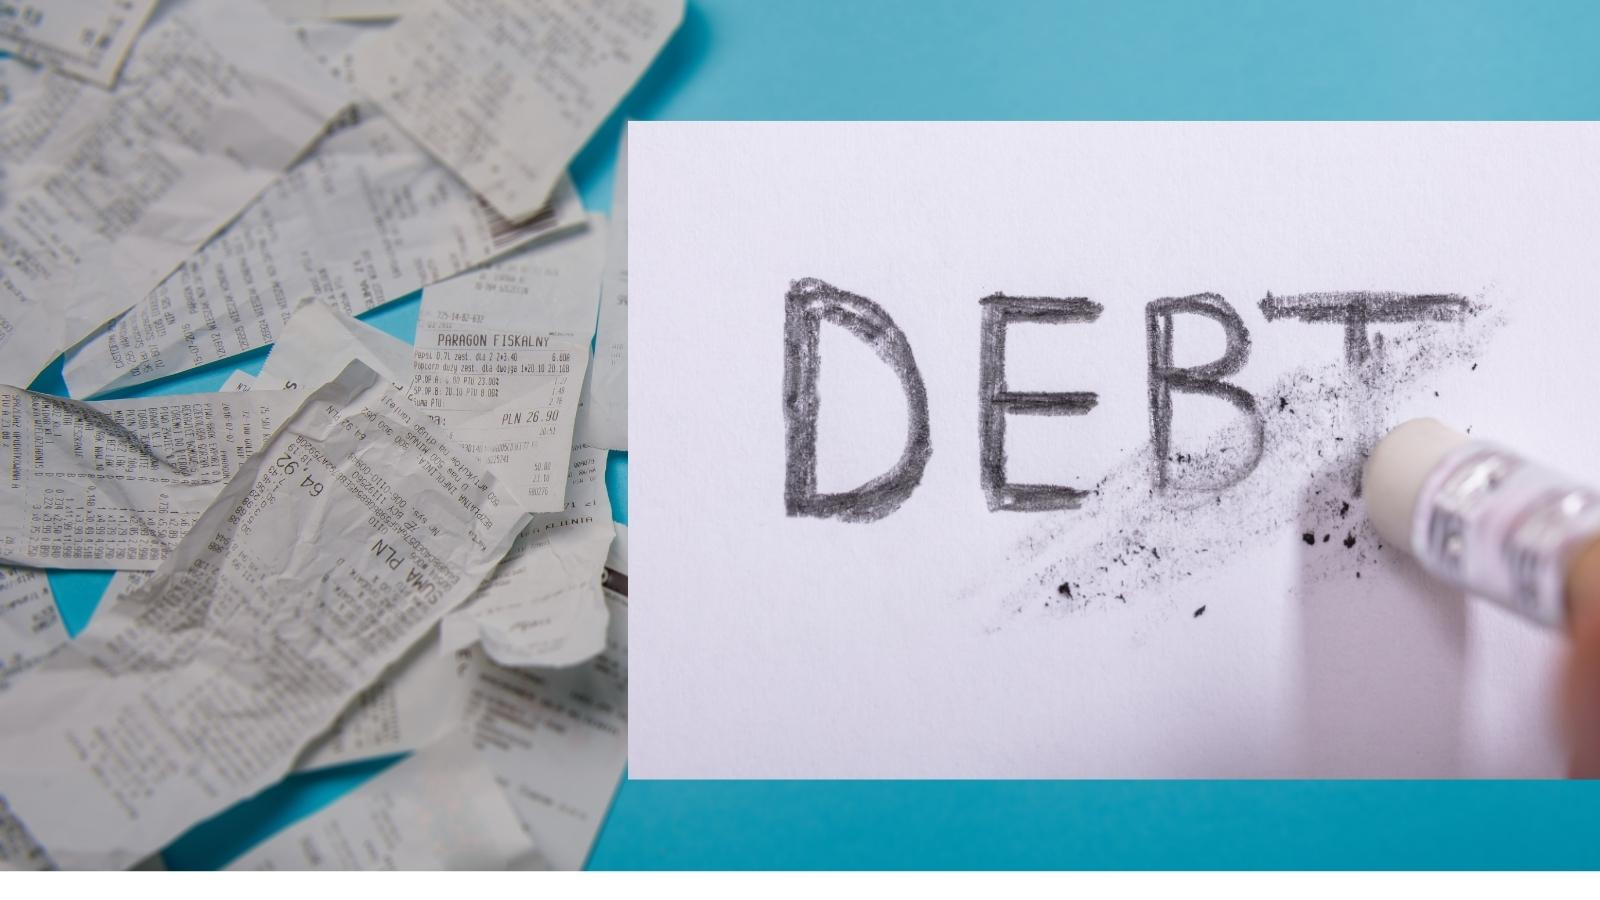 how much debt someone has and someone's final credit tally